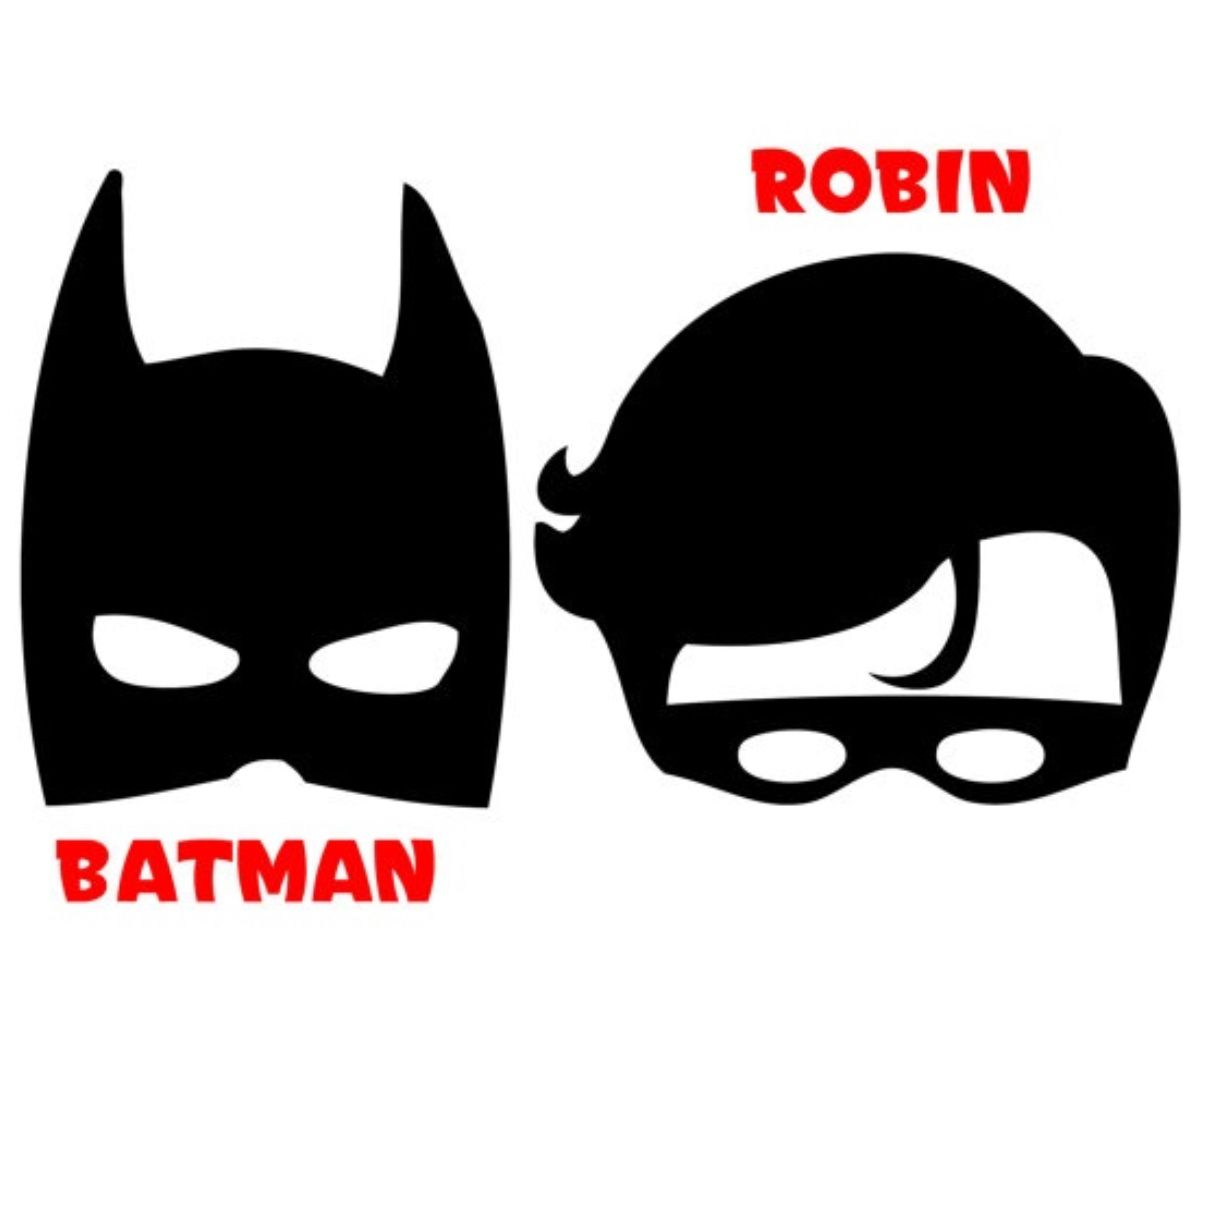 Batman amd robin clipart black and white image transparent download Pin by Marissa Kalan on CRICUT | Batman, robin costumes, Batman mask ... image transparent download